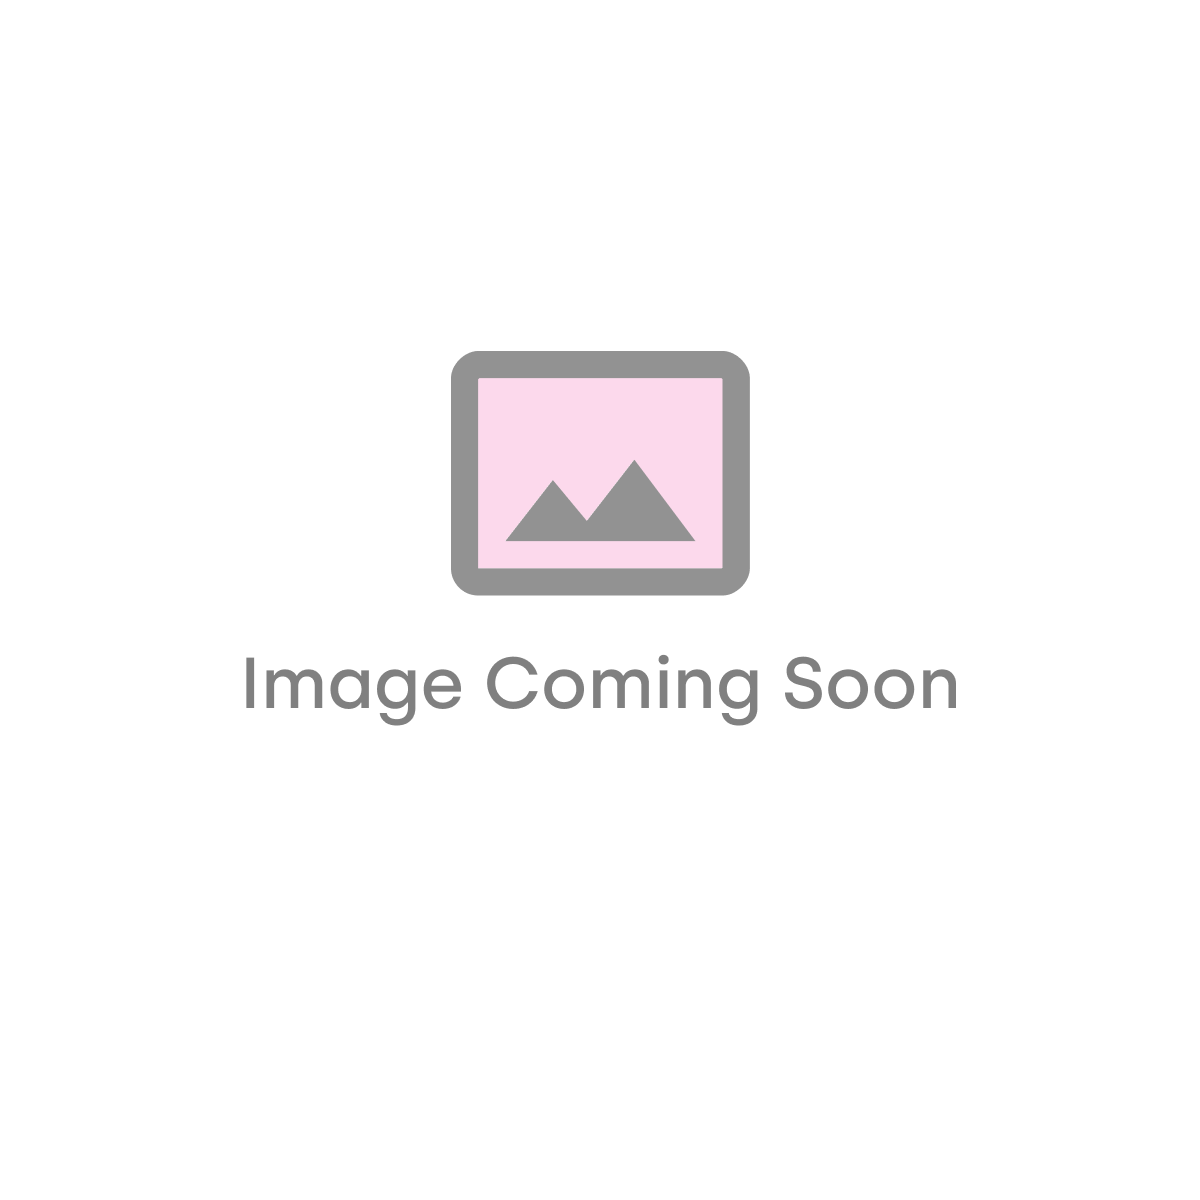 Reina Neva Vertical 1800 x 413mm Single Panel Designer Radiator - Anthracite (12367)